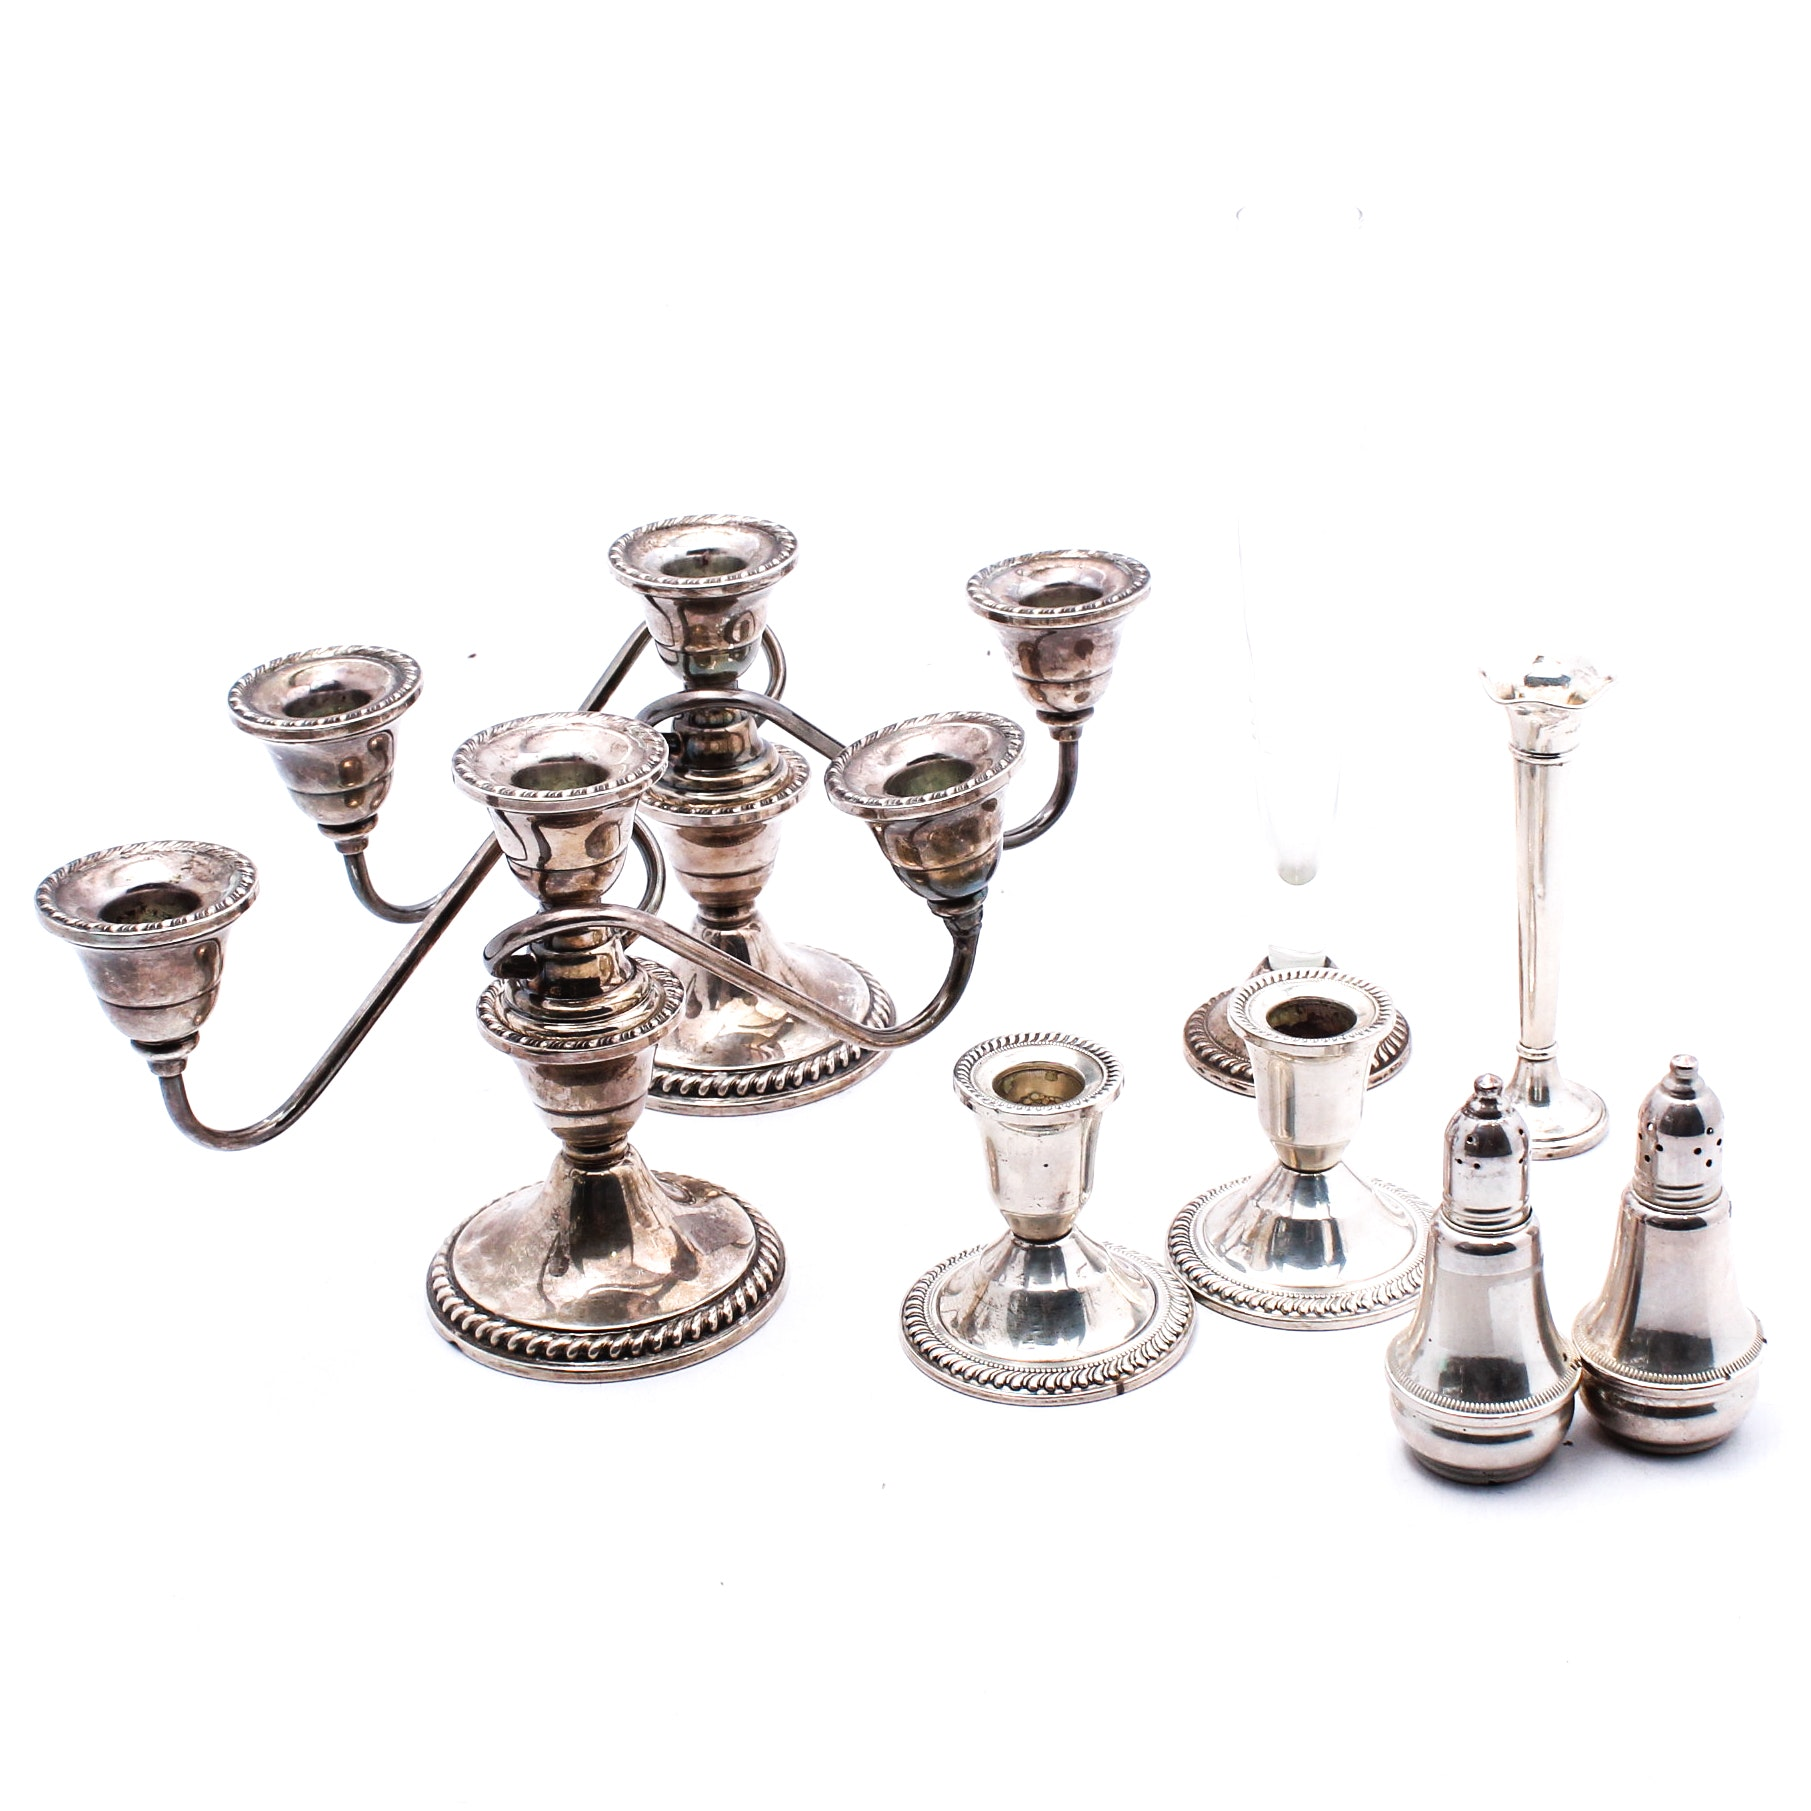 Sterling Silver Candelabras, Candle Holders, Shakers and Vases Featuring Duchin